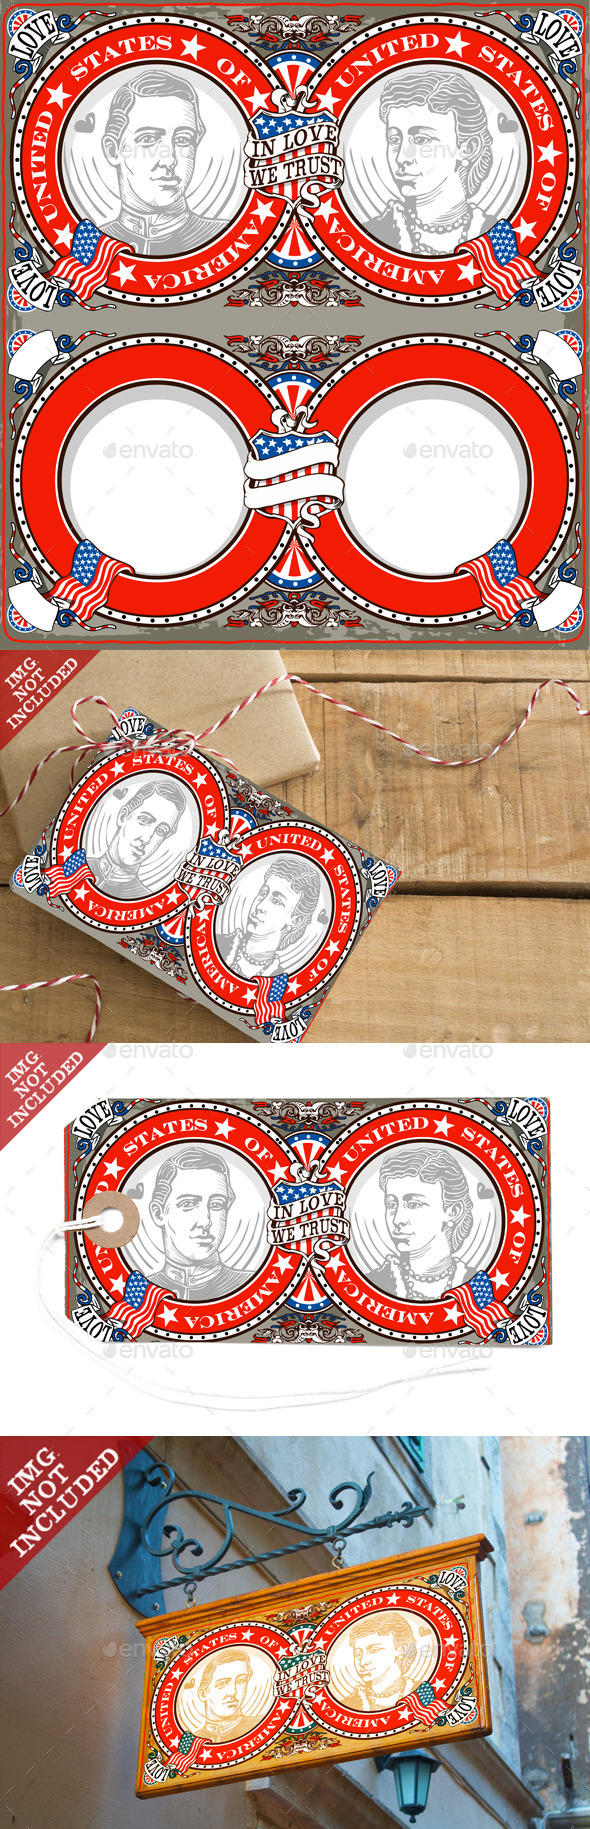 GraphicRiver American Vintage Patriot Wedding Invite 10025222